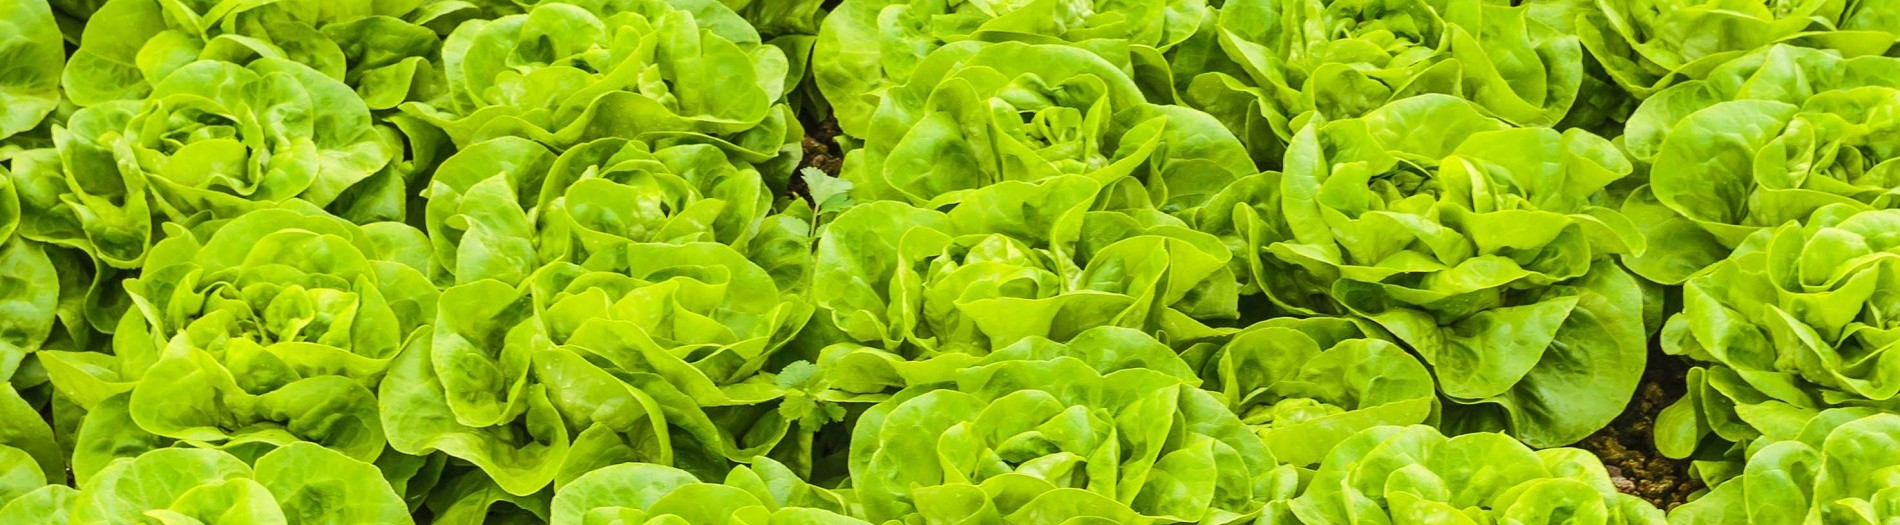 Impact on sustainability, shelf life and nutritional value by vertically farmed leafy greens via a new local supply chain